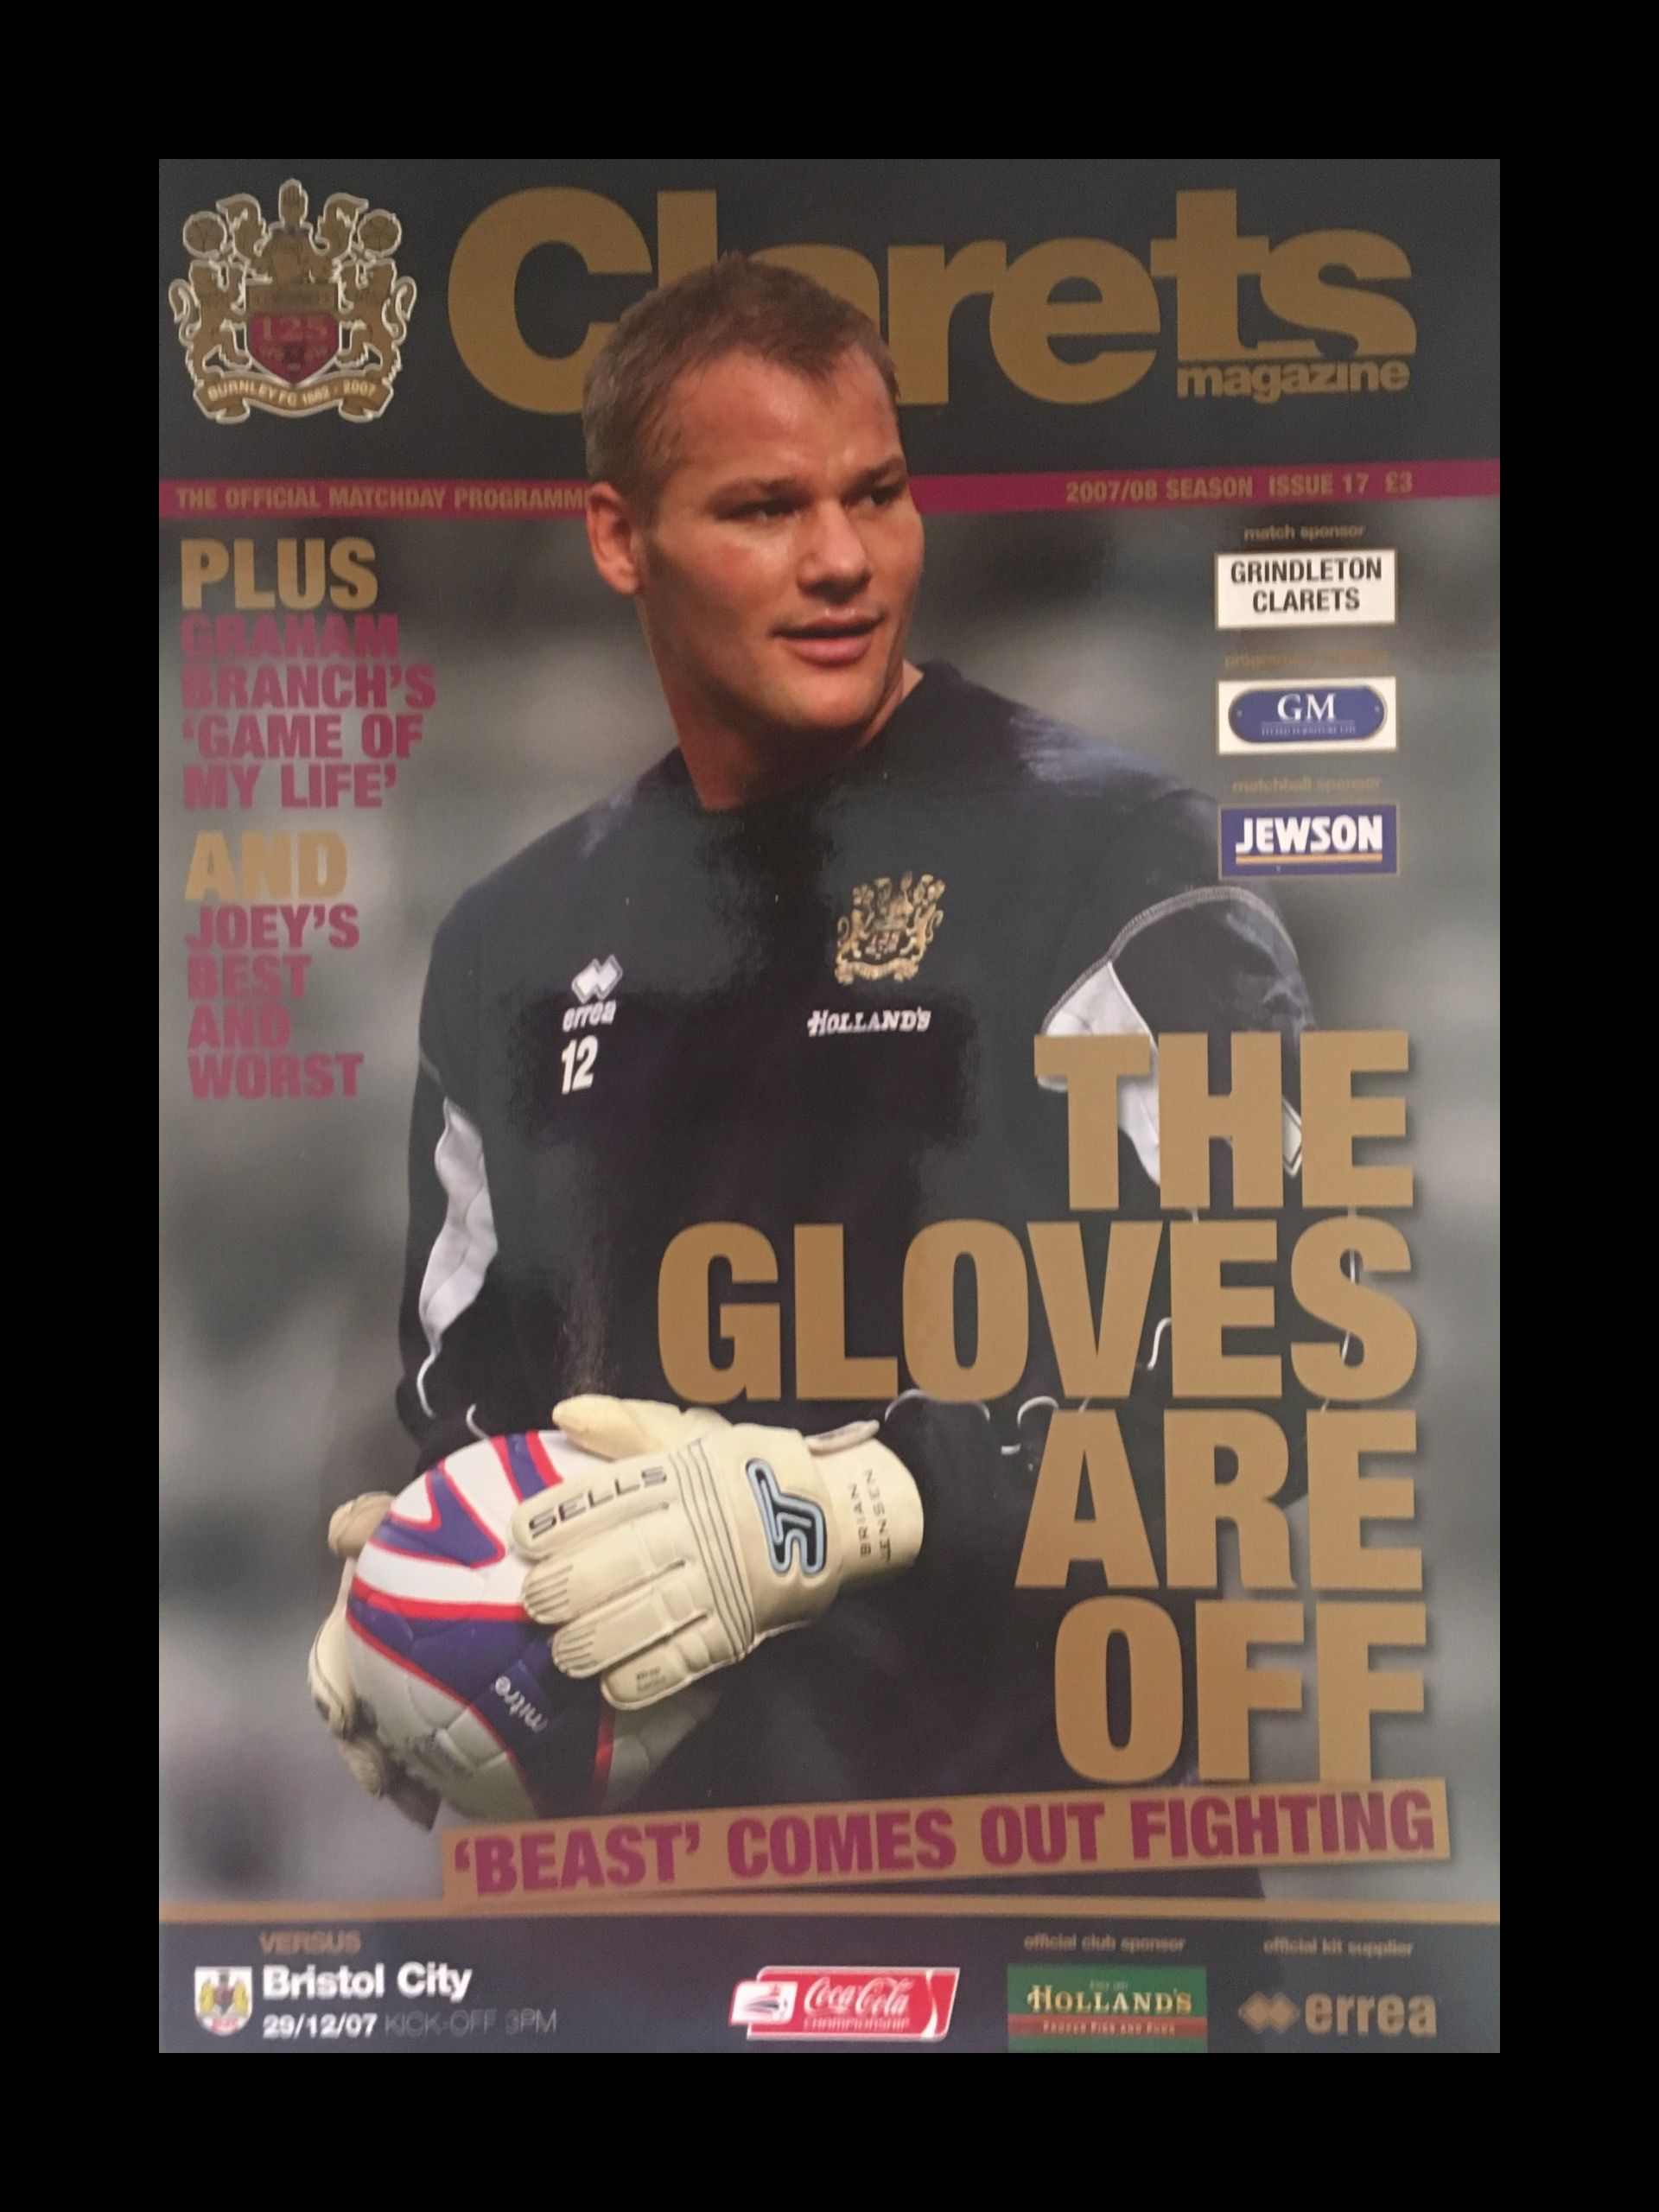 Burnley v Bristol City 29-12-2007 Programme